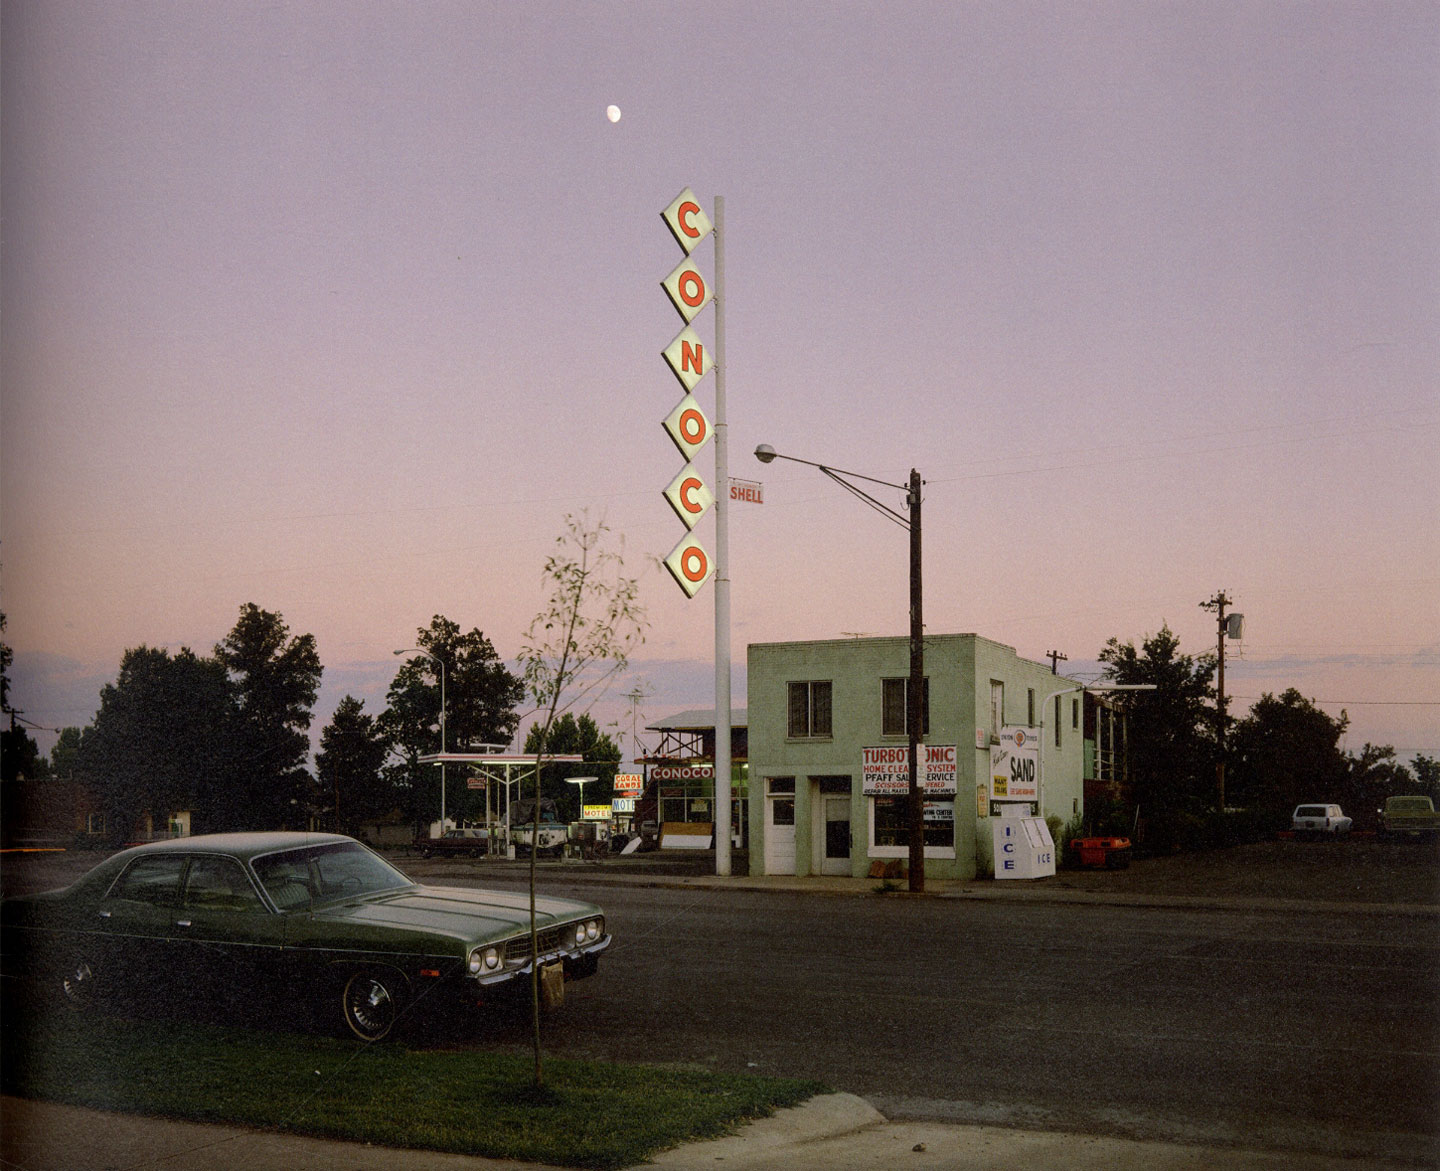 Stephen Shore: Selected Works, 1973-1981 [SIGNED by Shore]